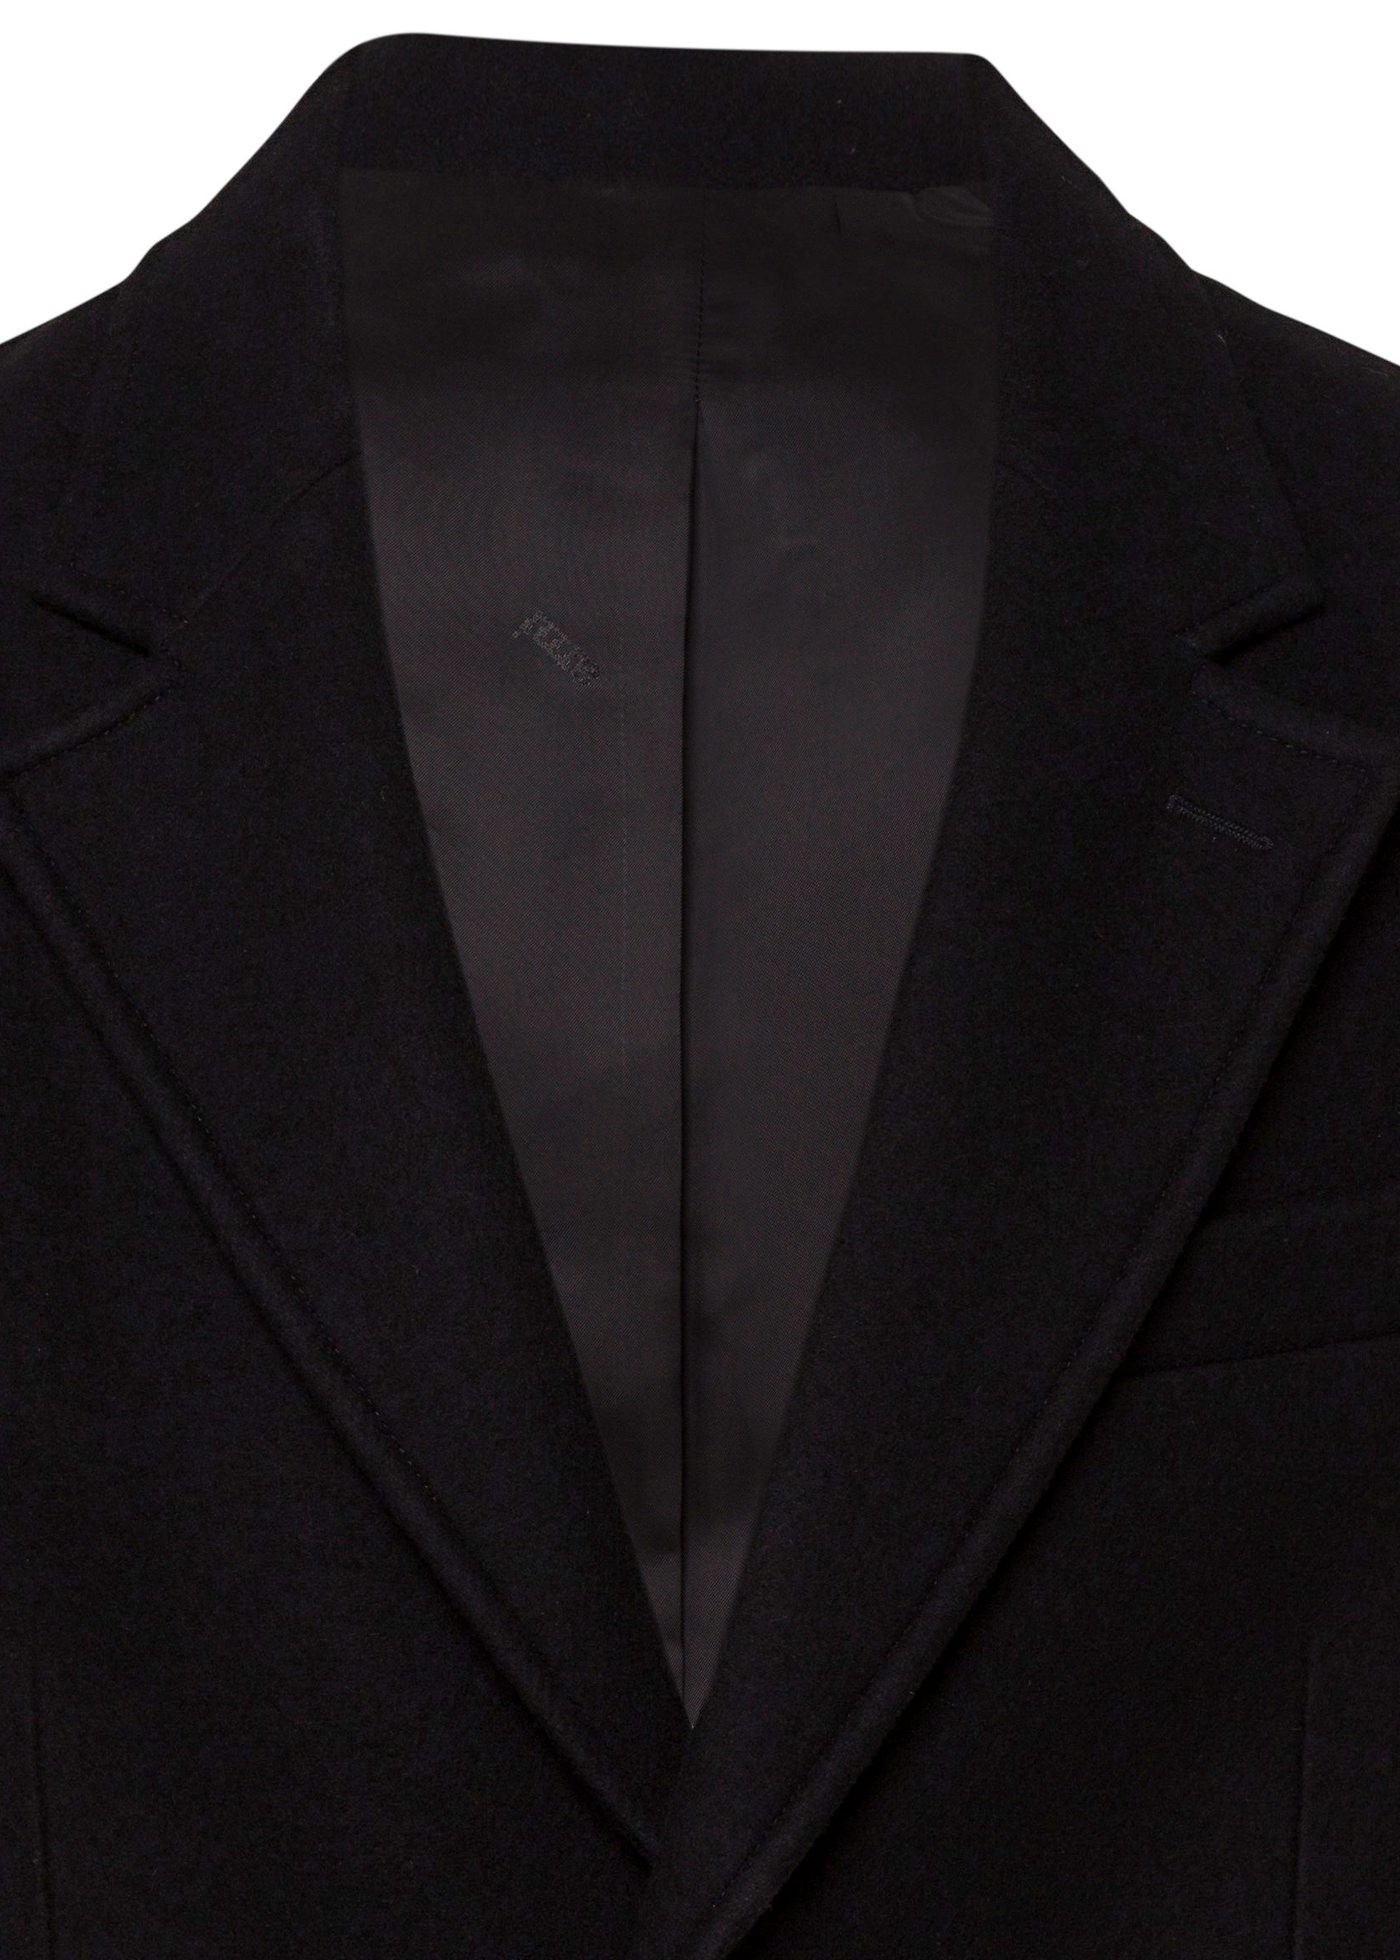 TWO BUTTONS COAT image number 2